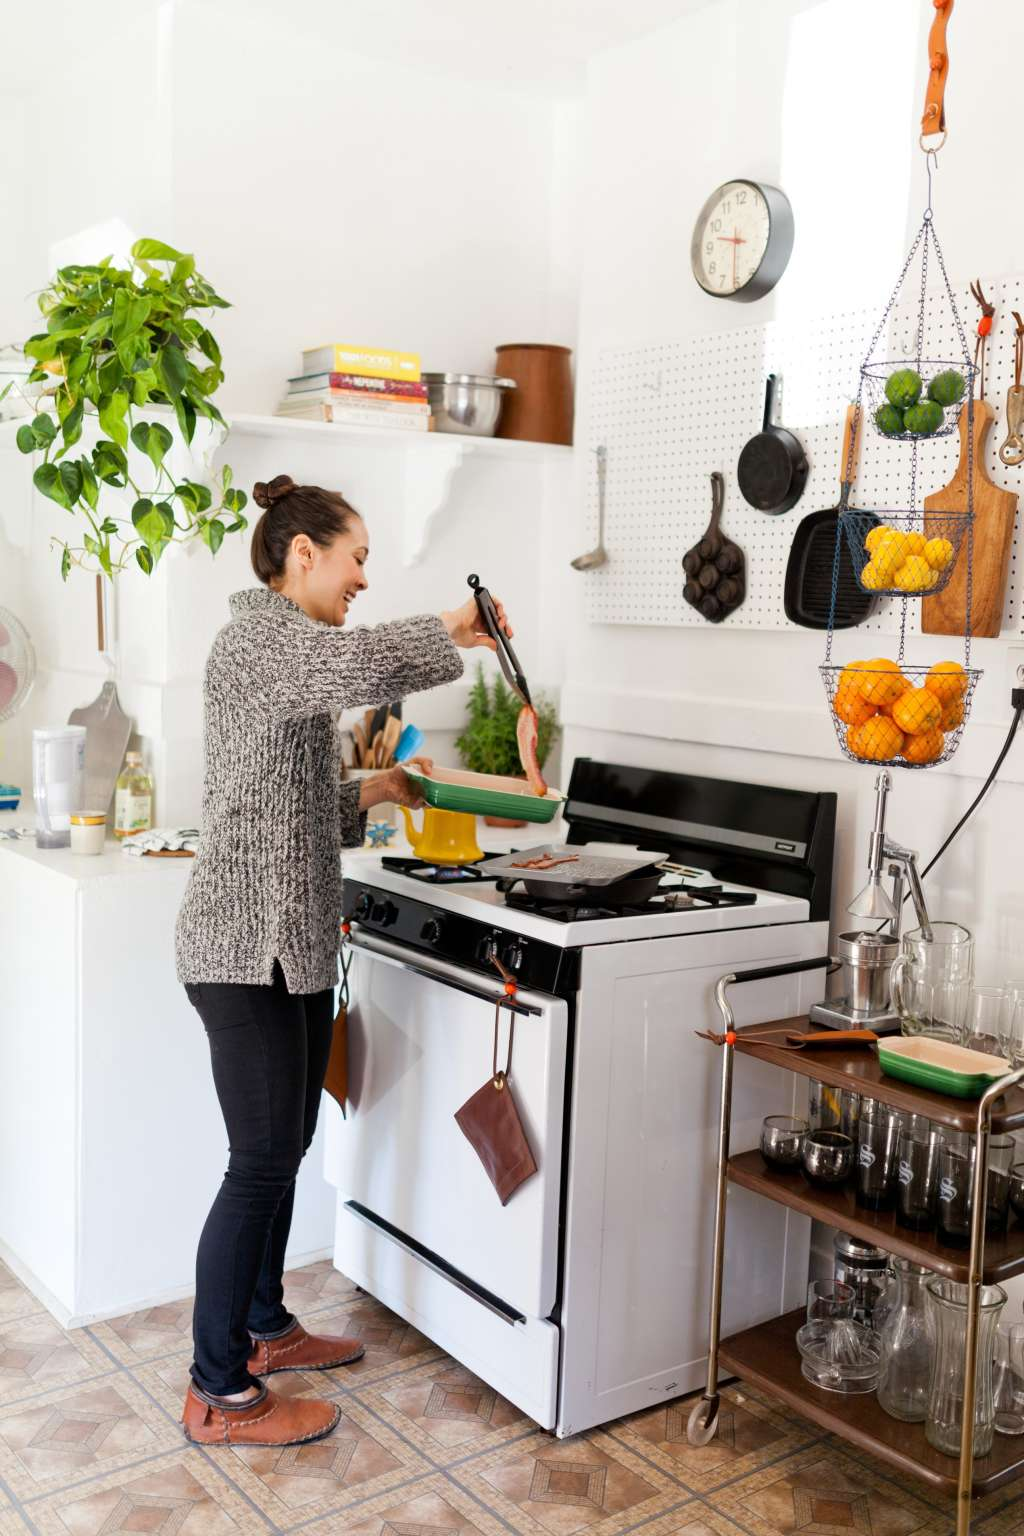 5 Things You Should Always Keep Within Arm's Reach of the Stove